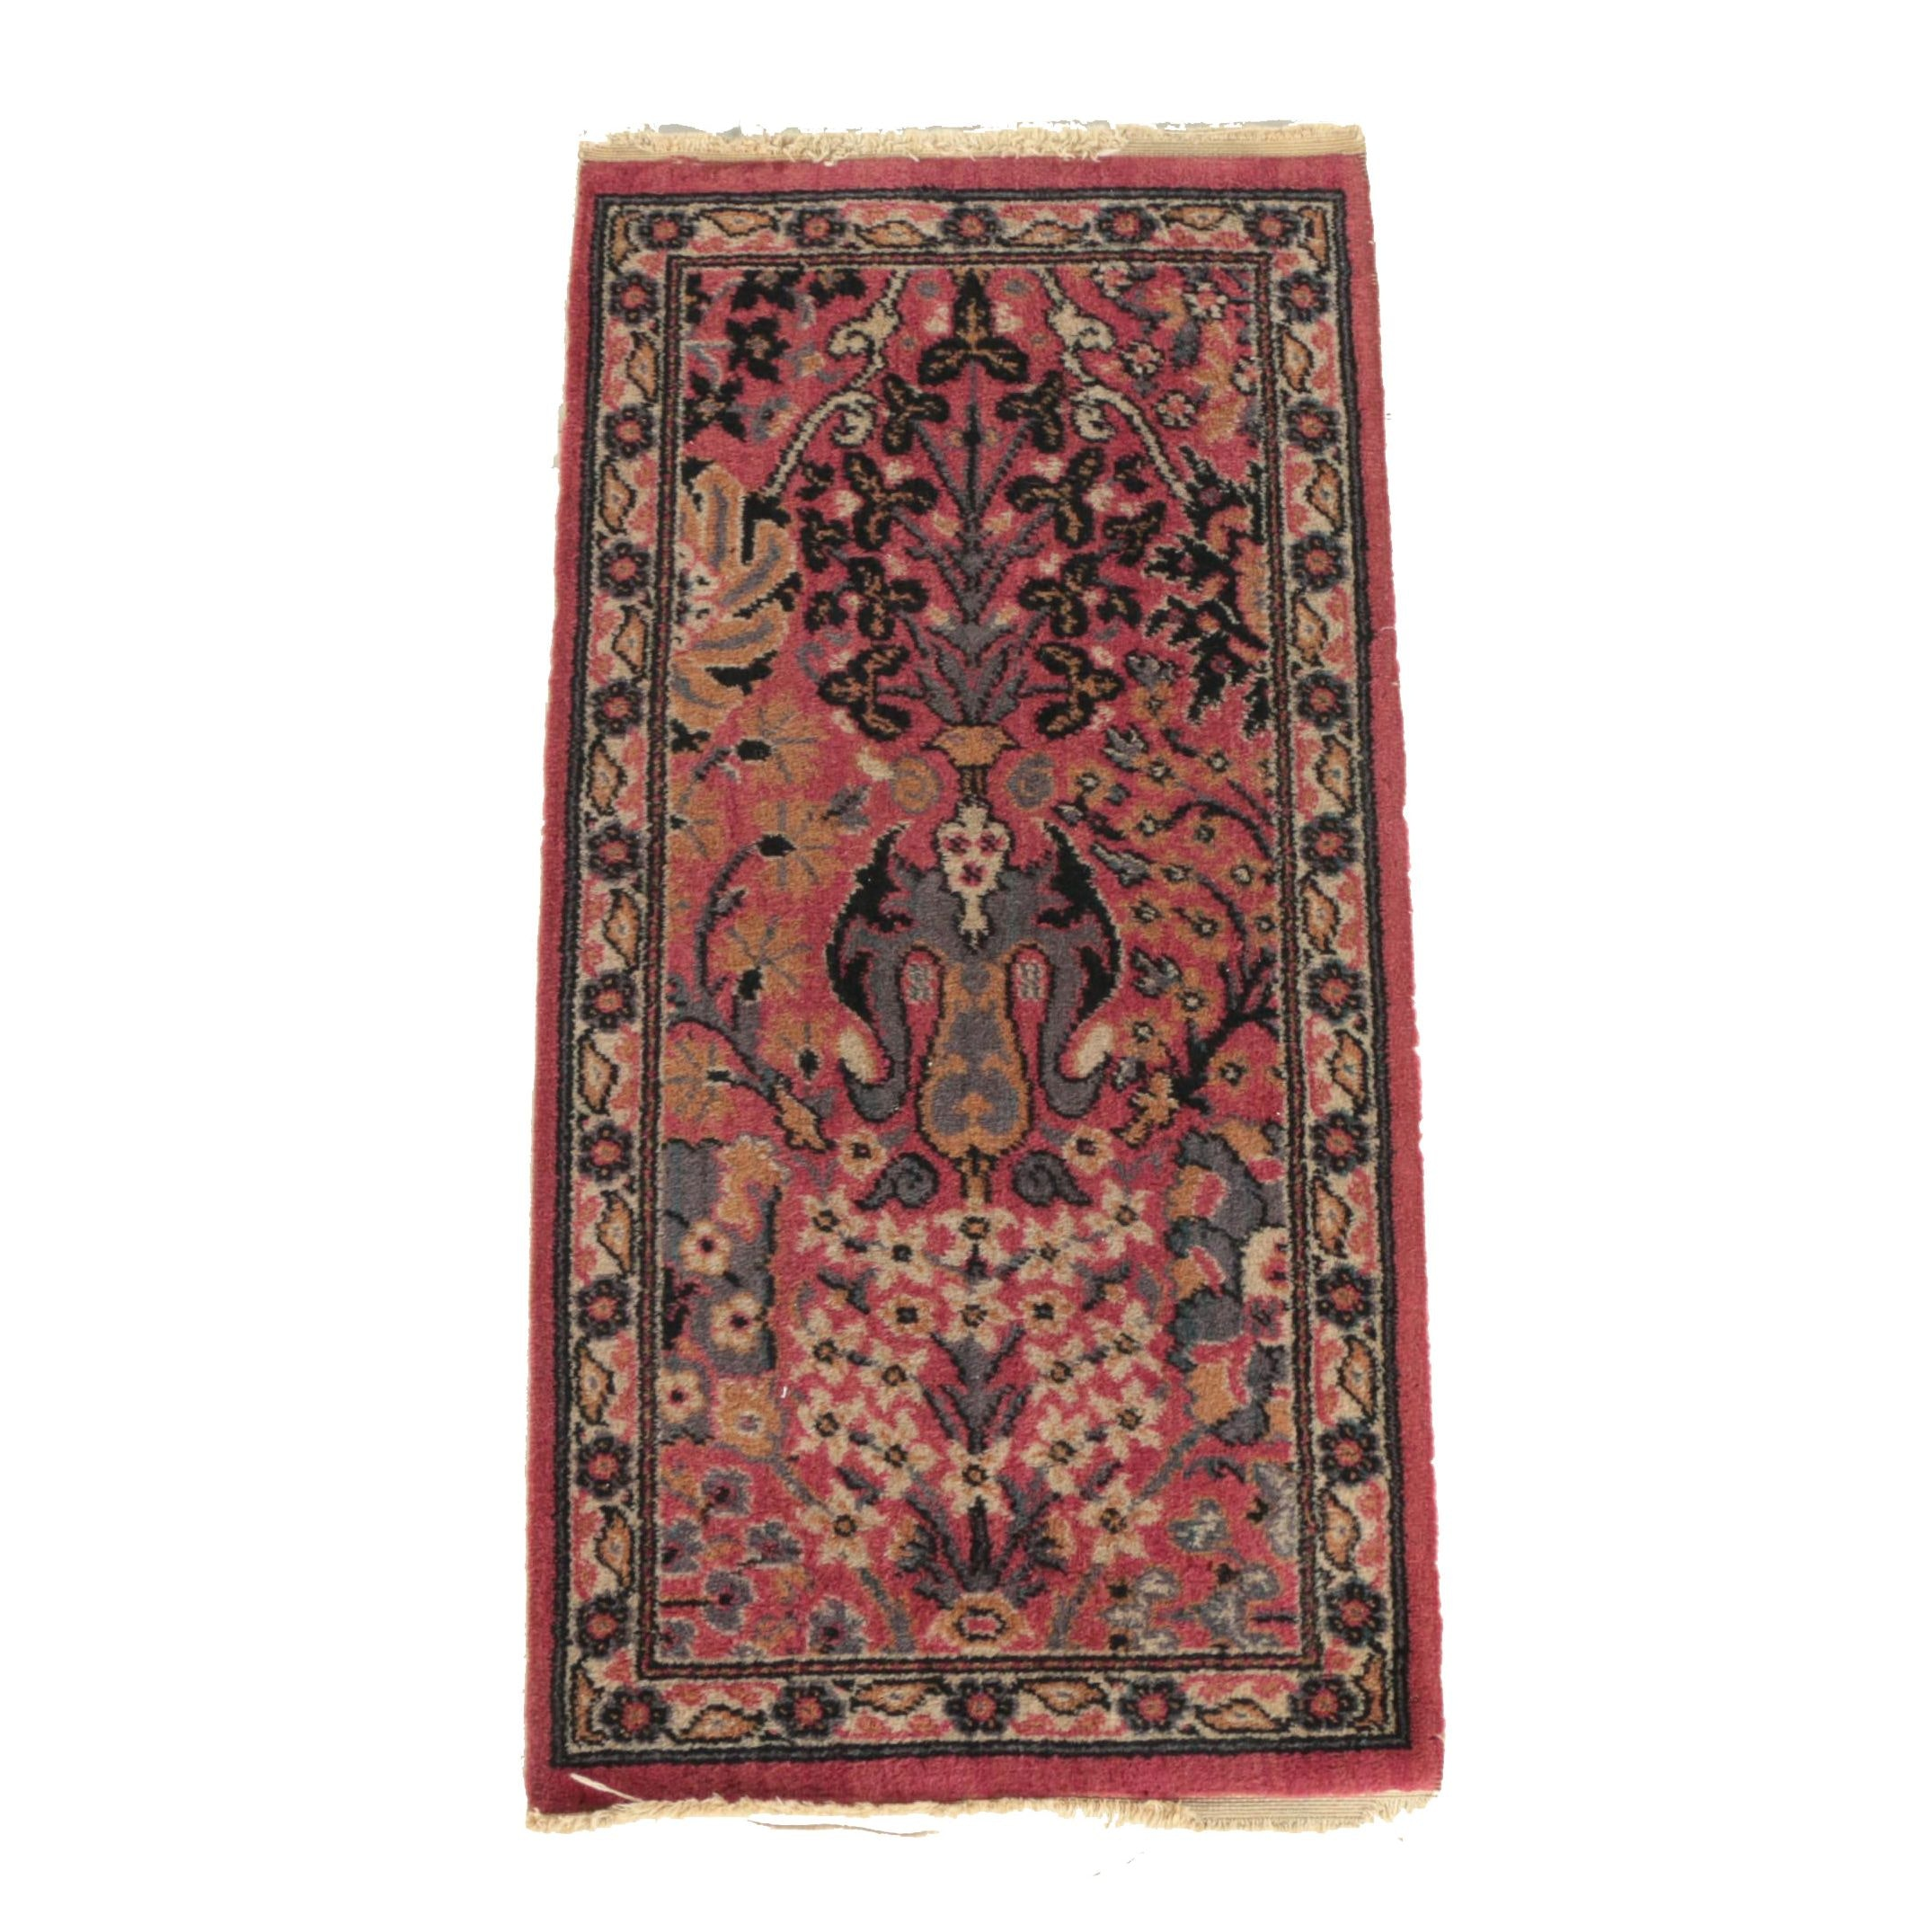 Vintage Power-Loomed Persian-Style Wool Accent Rug